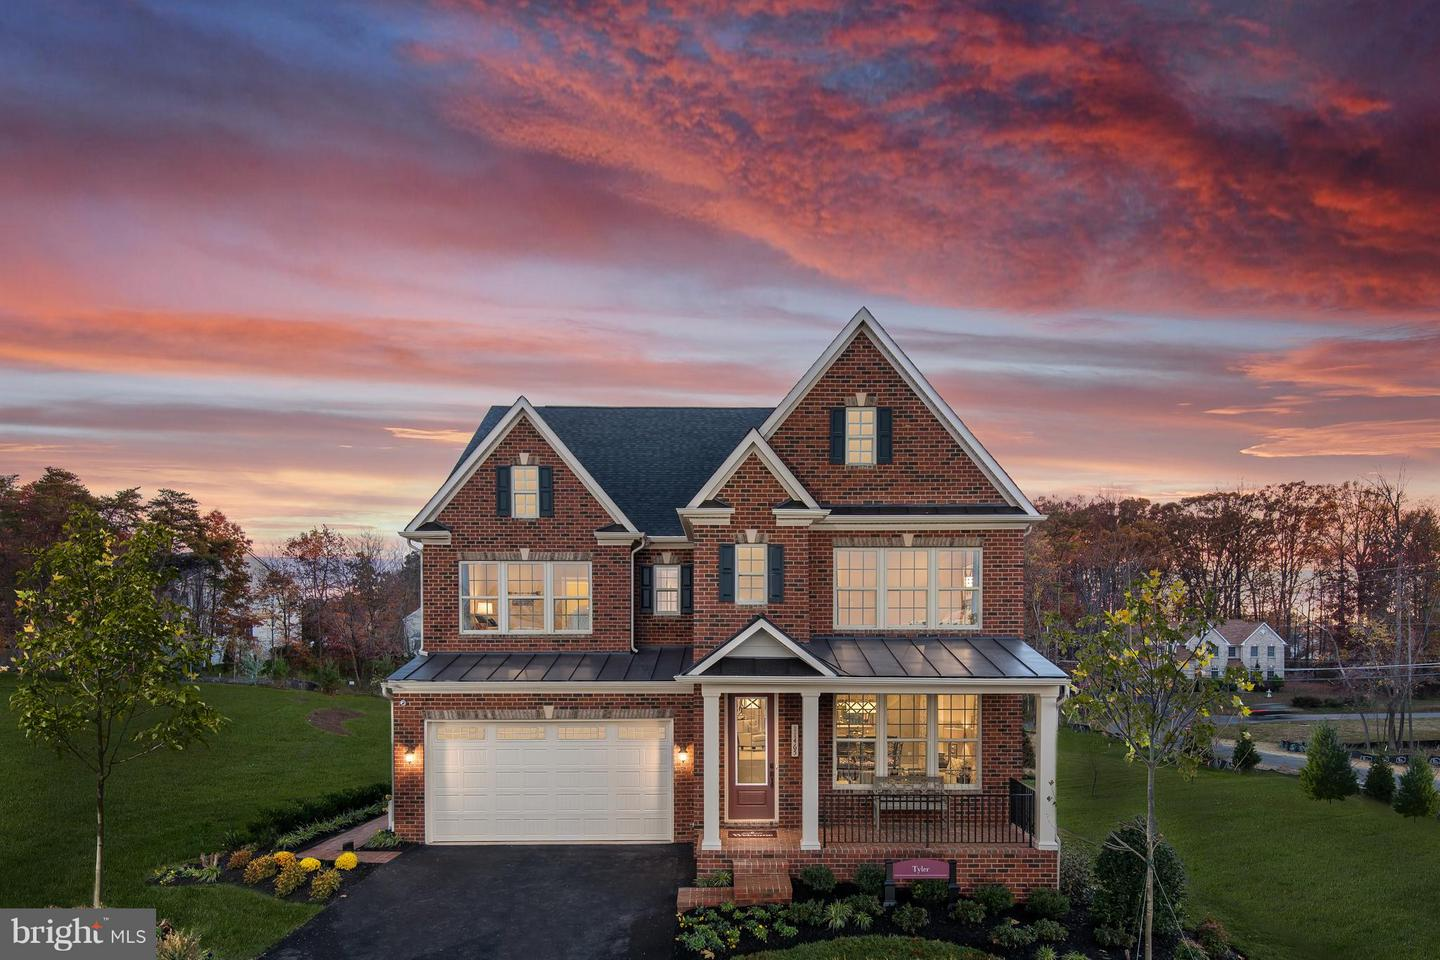 Single Family Home for Sale at 2621 Orchard Oriole Way 2621 Orchard Oriole Way Odenton, Maryland 21113 United States